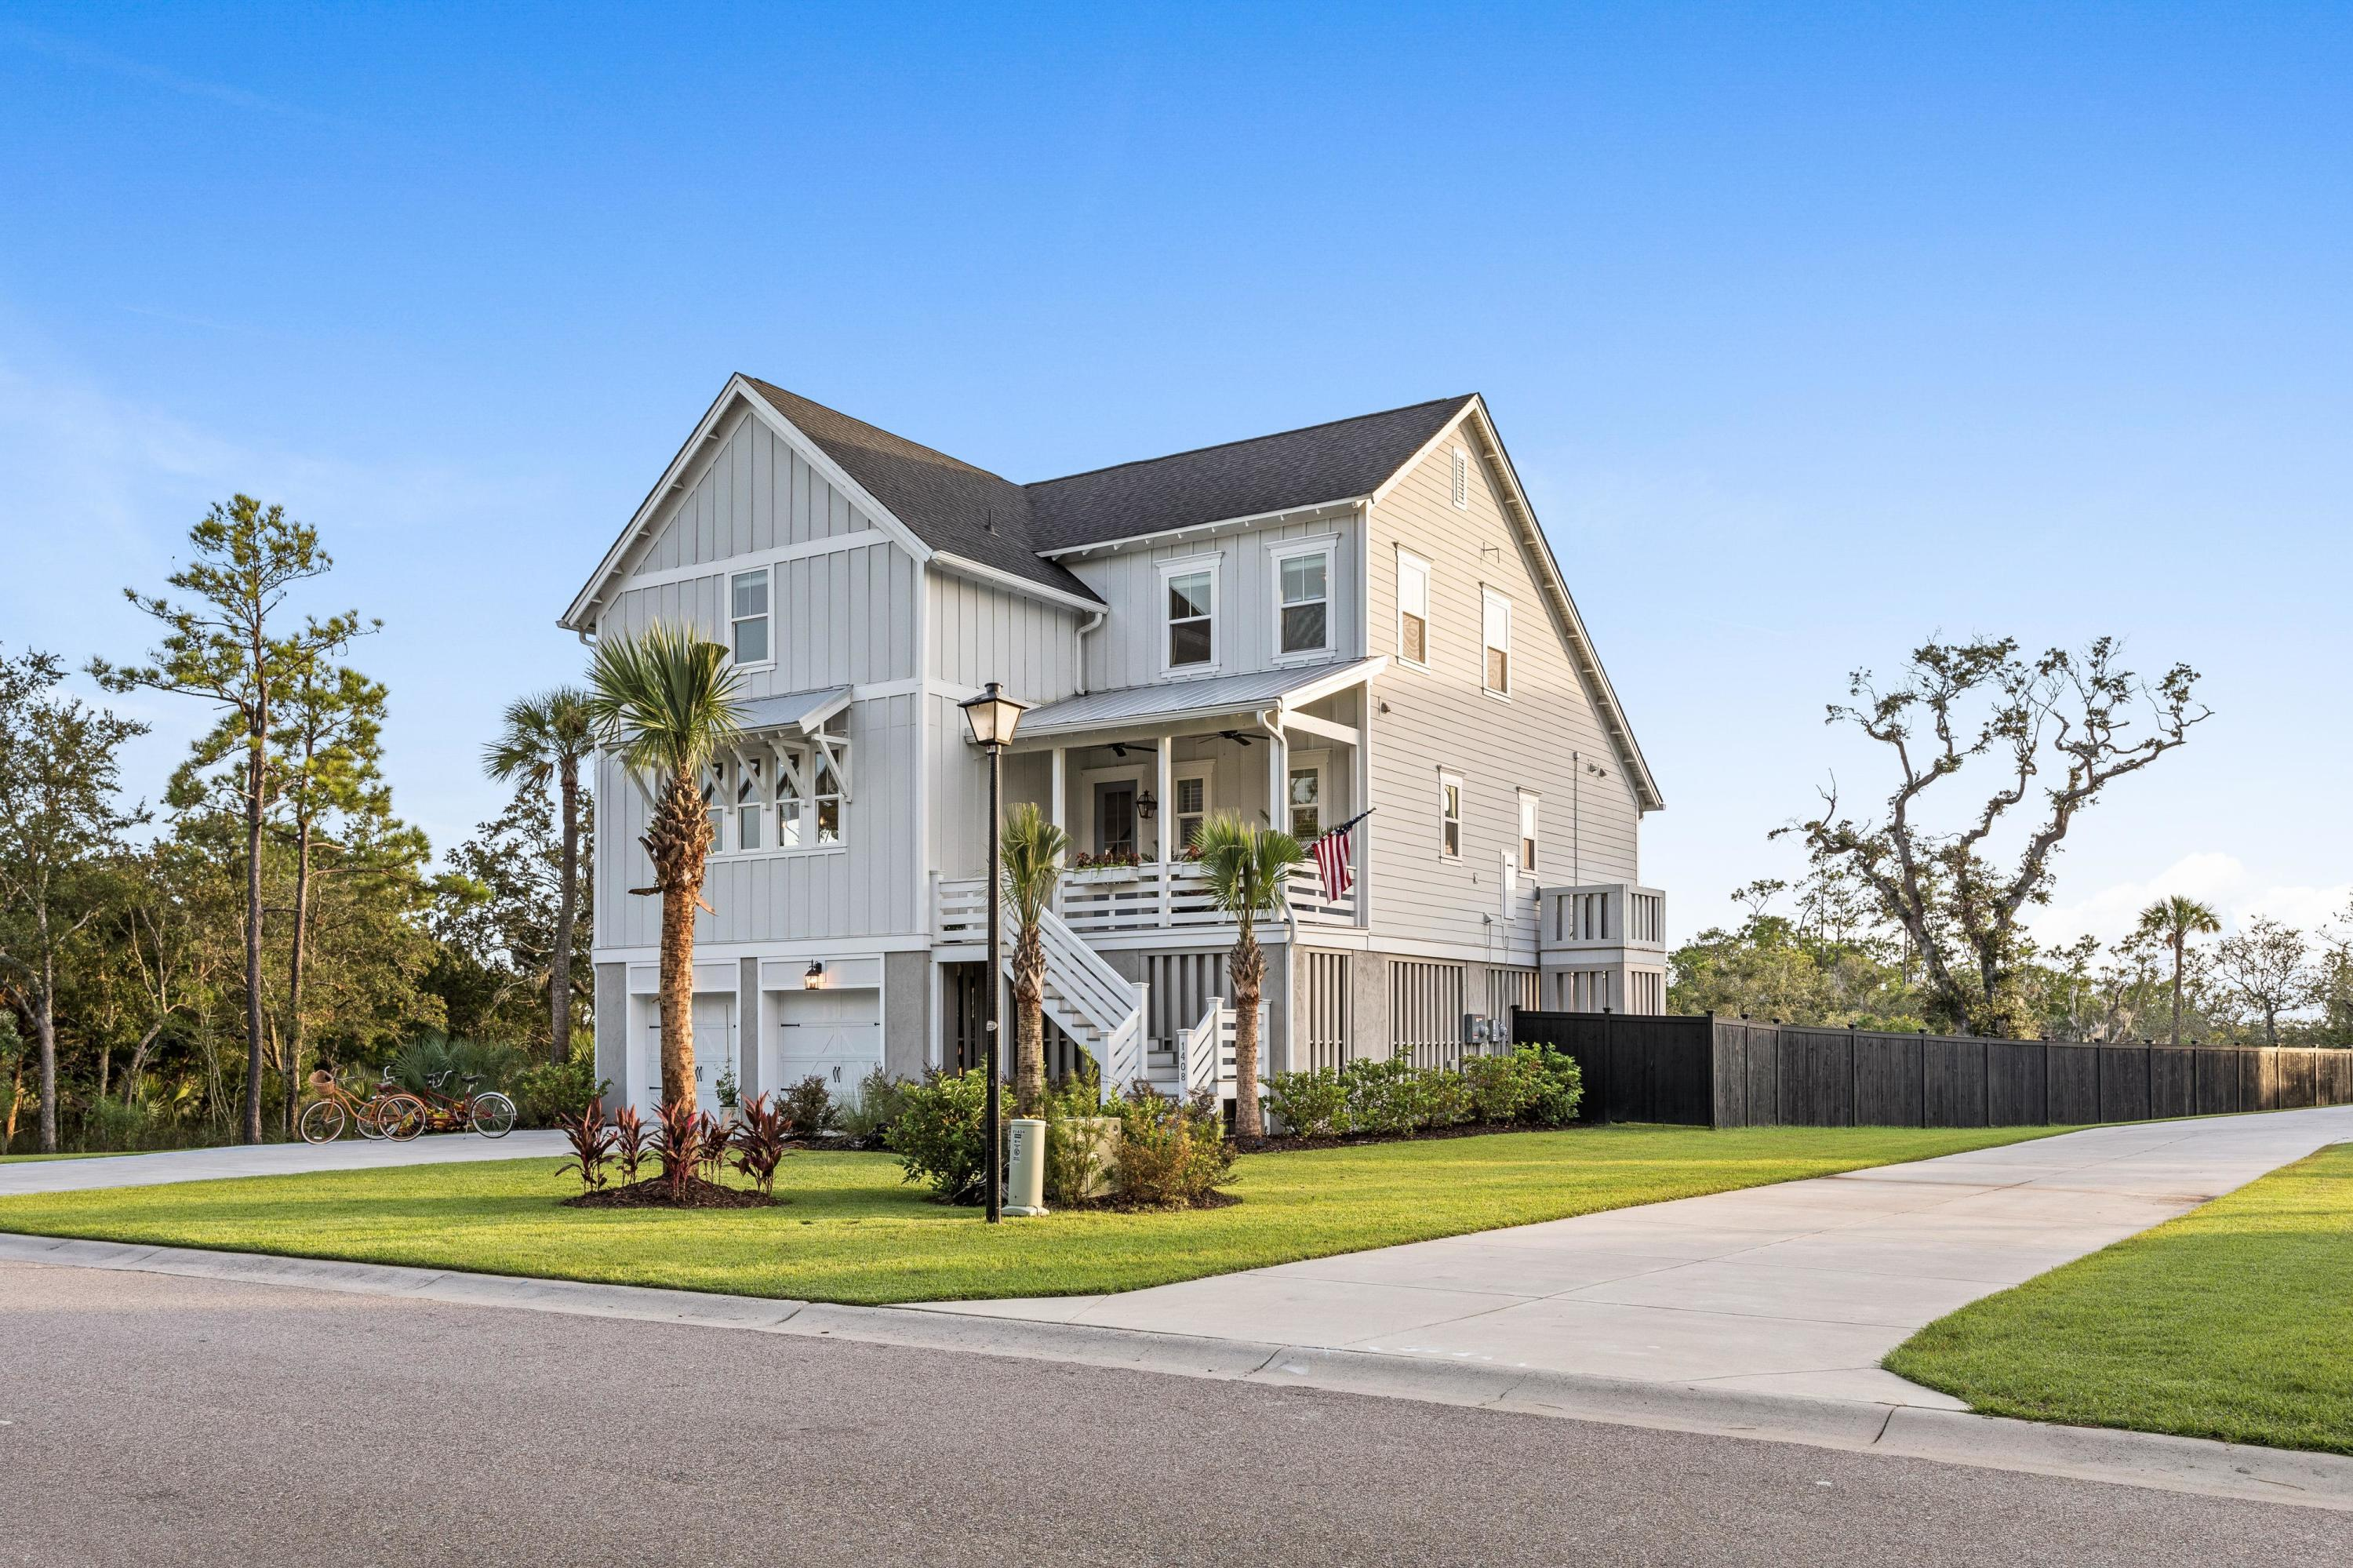 Stratton by the Sound Homes For Sale - 1408 Stratton, Mount Pleasant, SC - 18